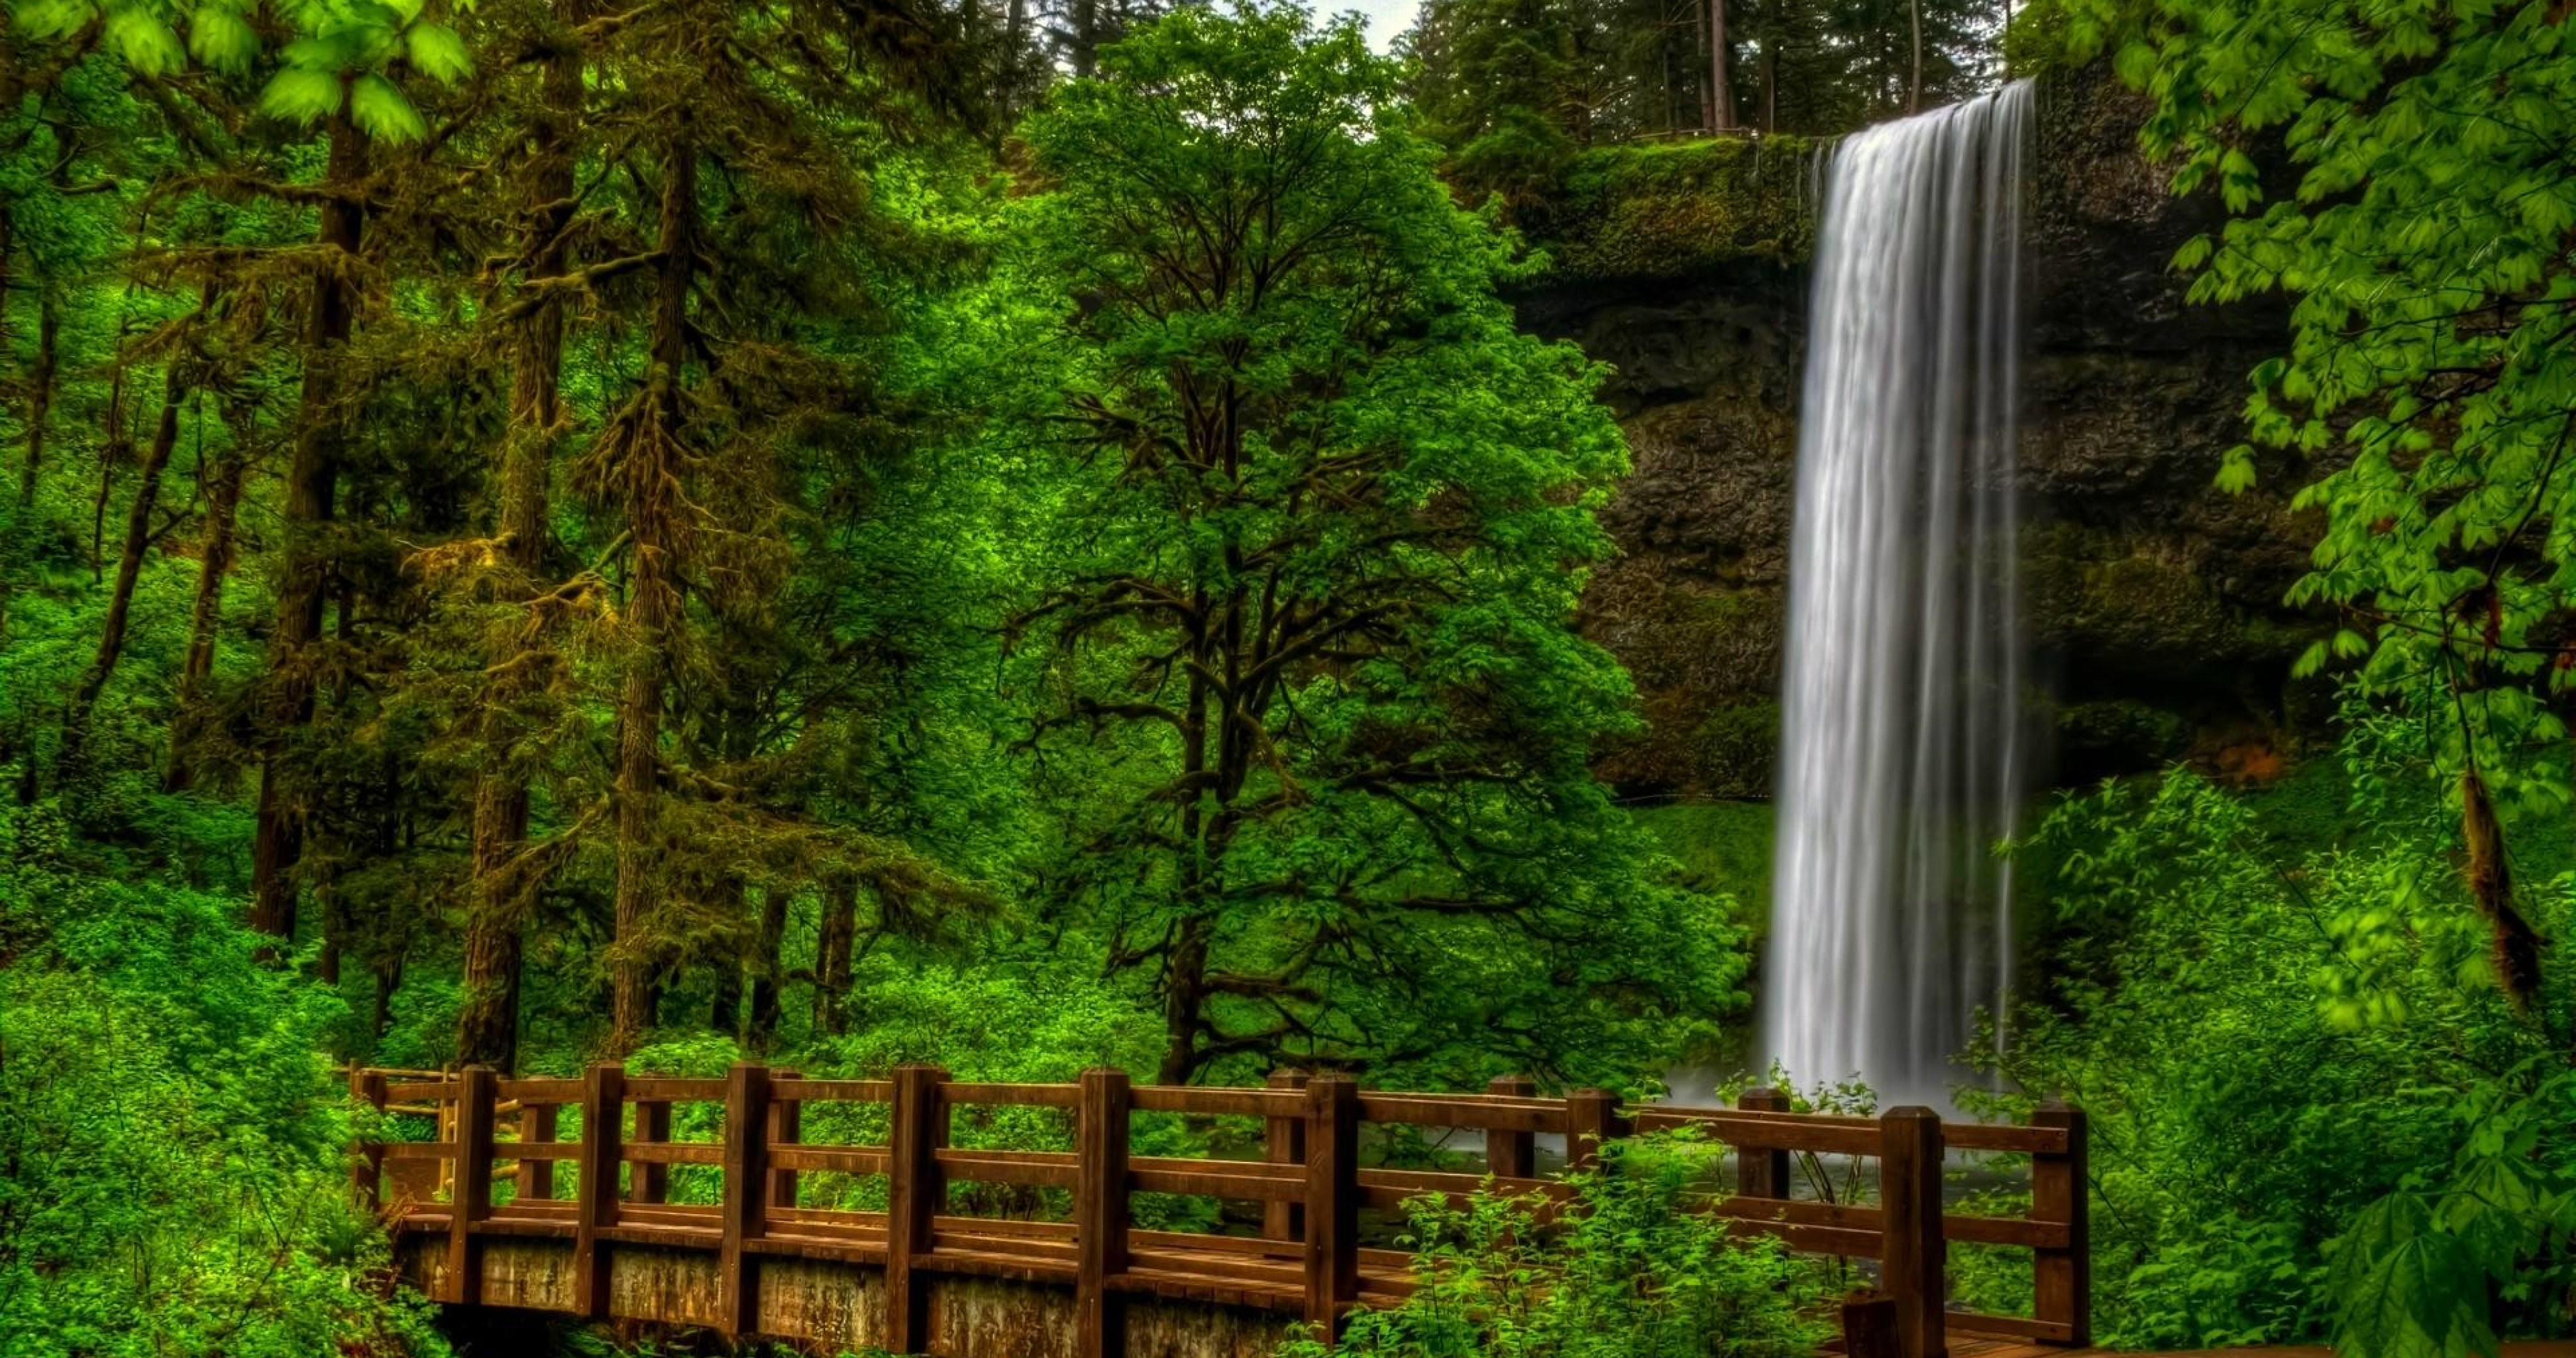 Forest 4k Quality Iphone Wallpaper: Waterfall In Forest Wallpaper 68 4k Ultra Hd Wallpaper